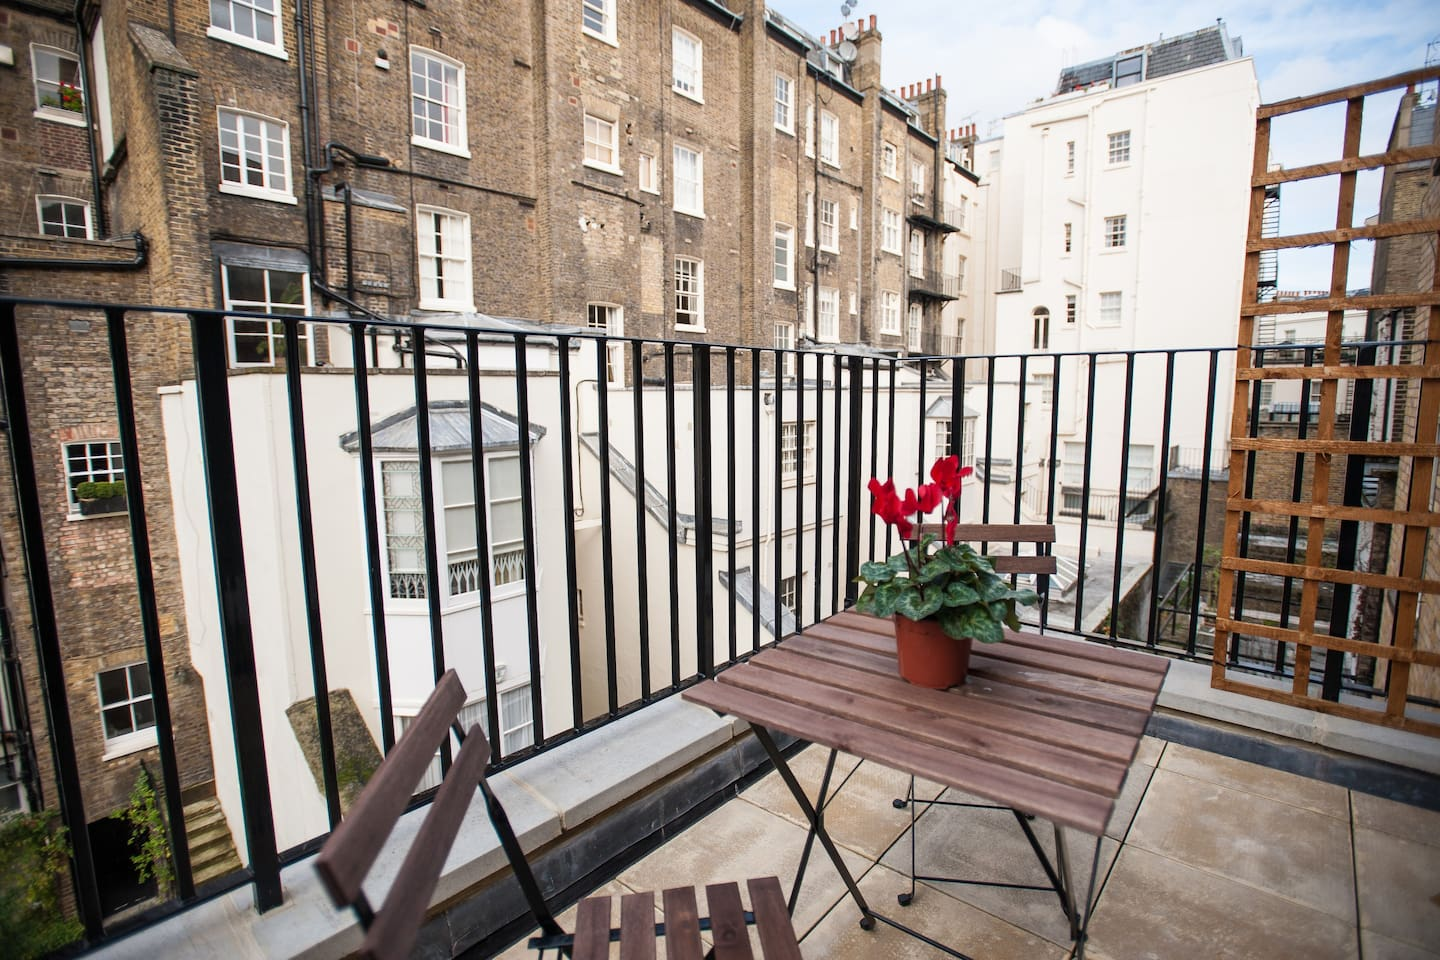 airbnb in plimlico london